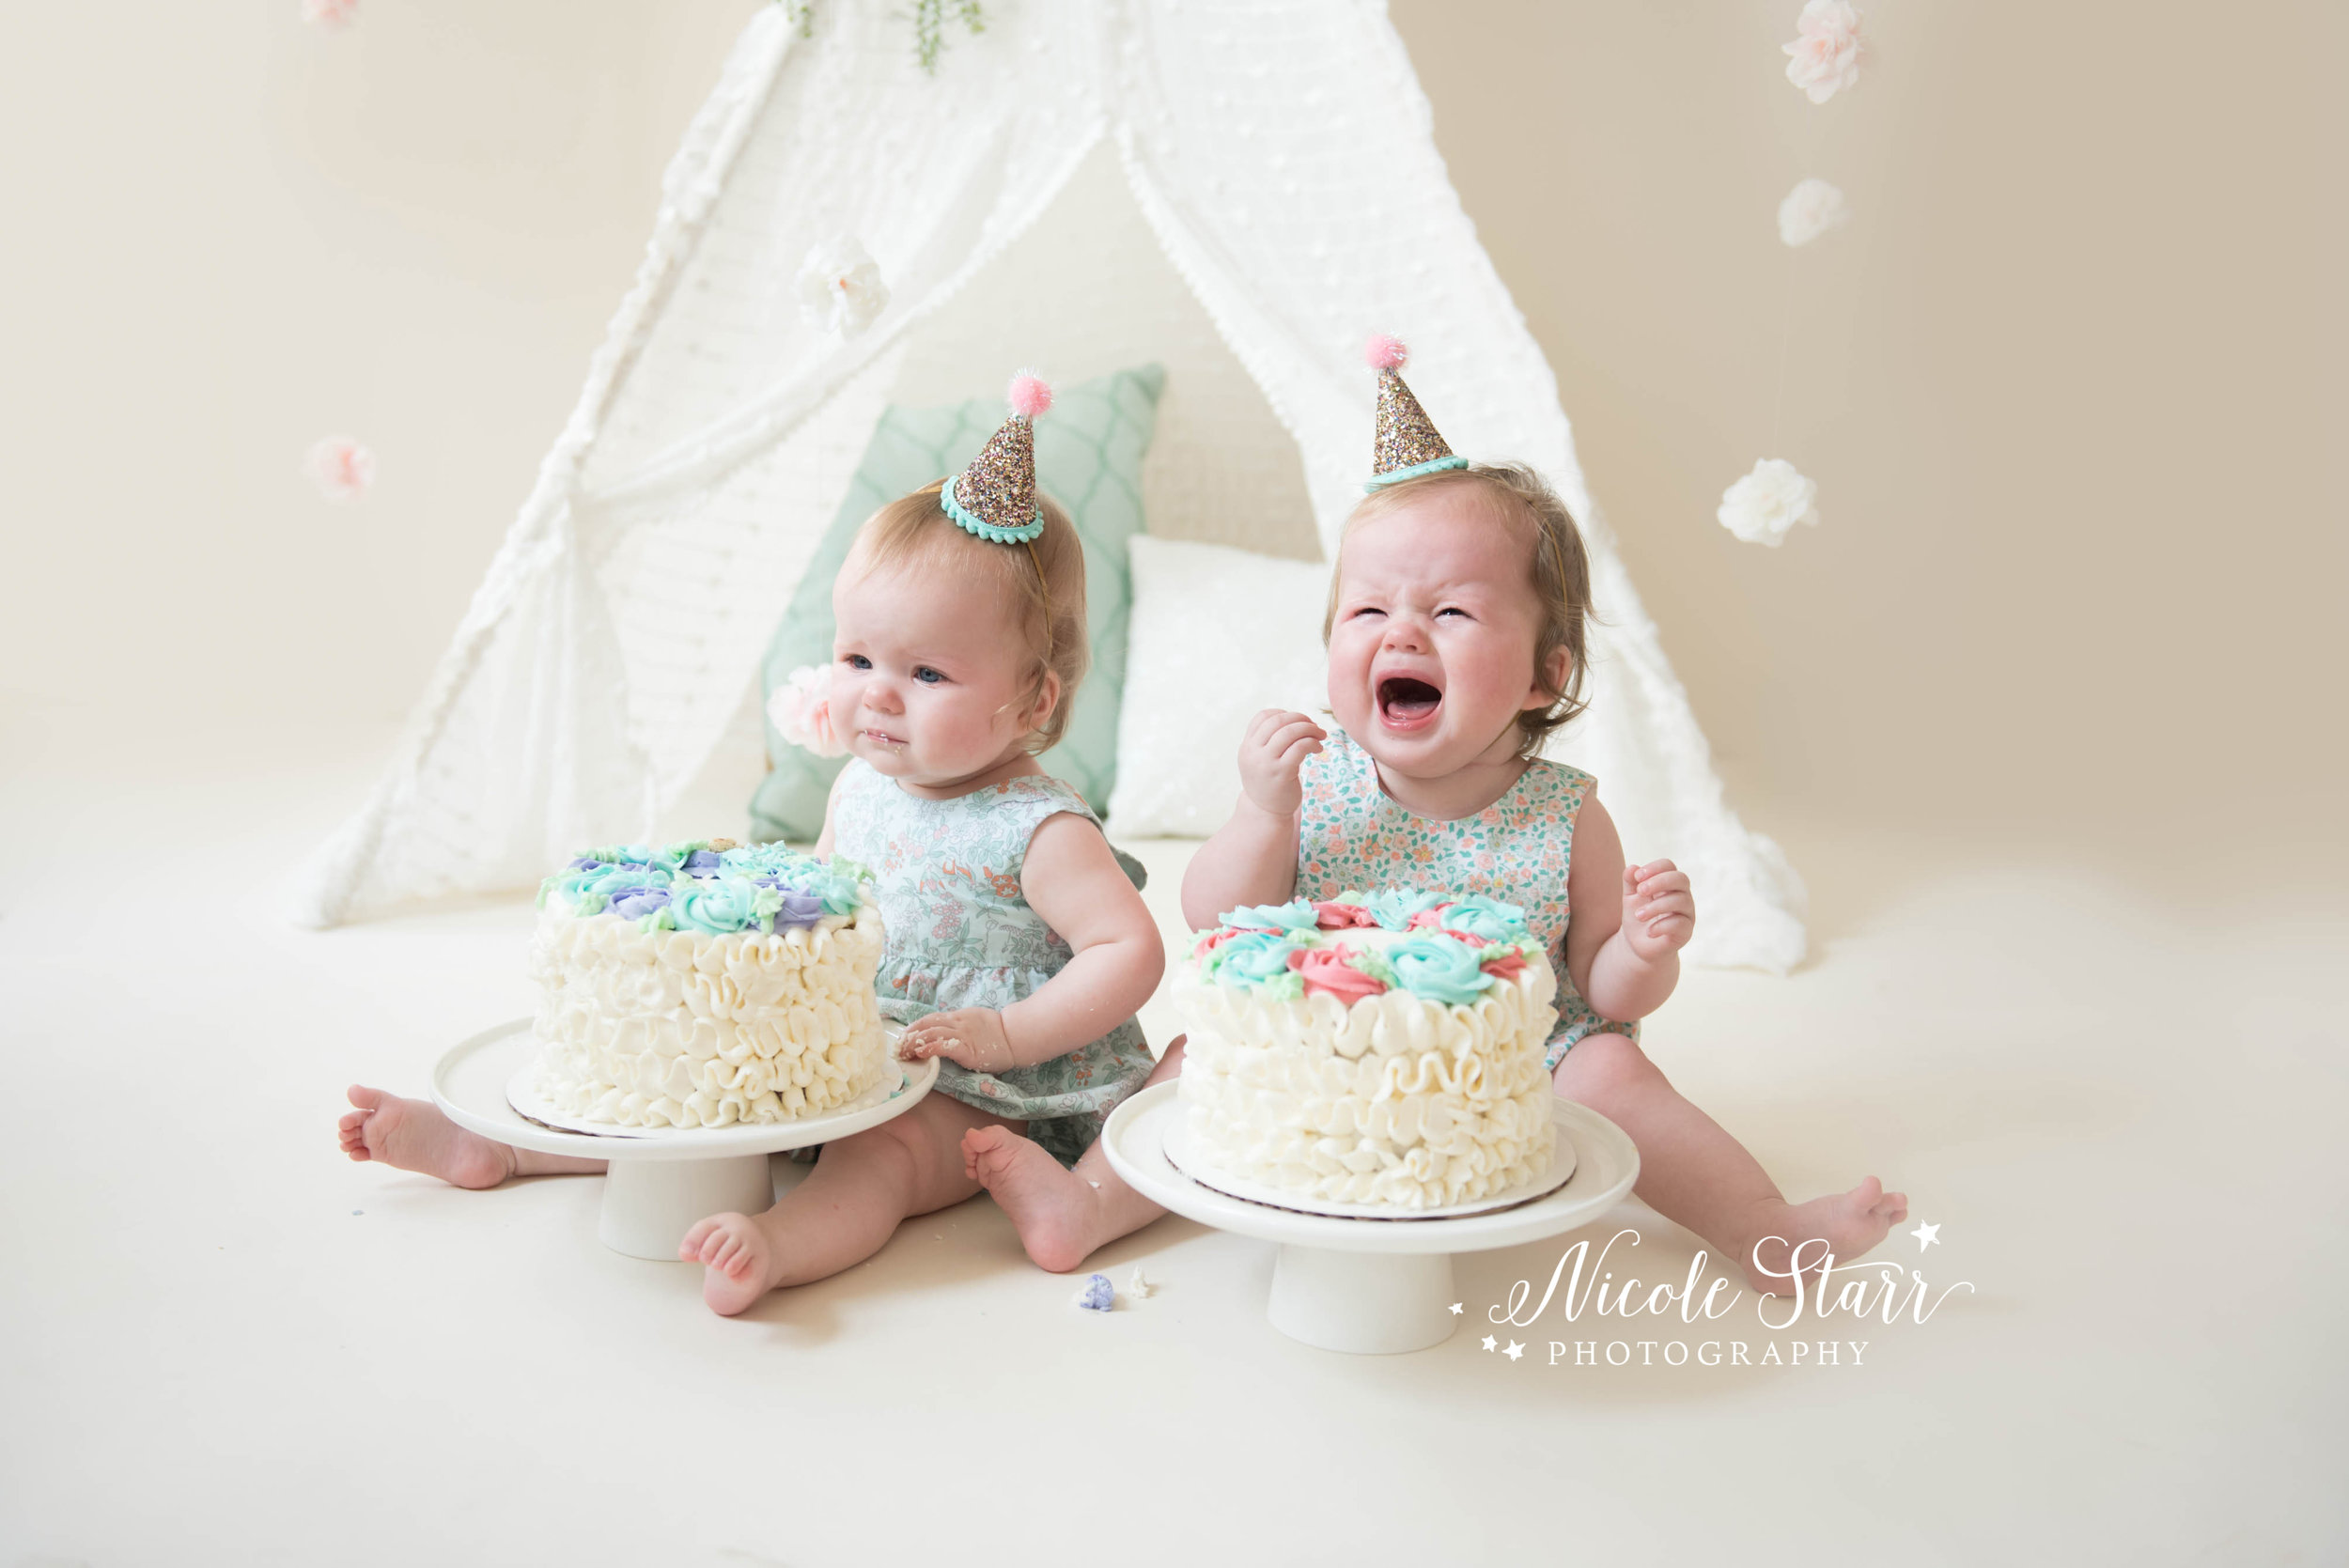 saratoga springs cake smash baby photographer, boston cake smash baby photographer